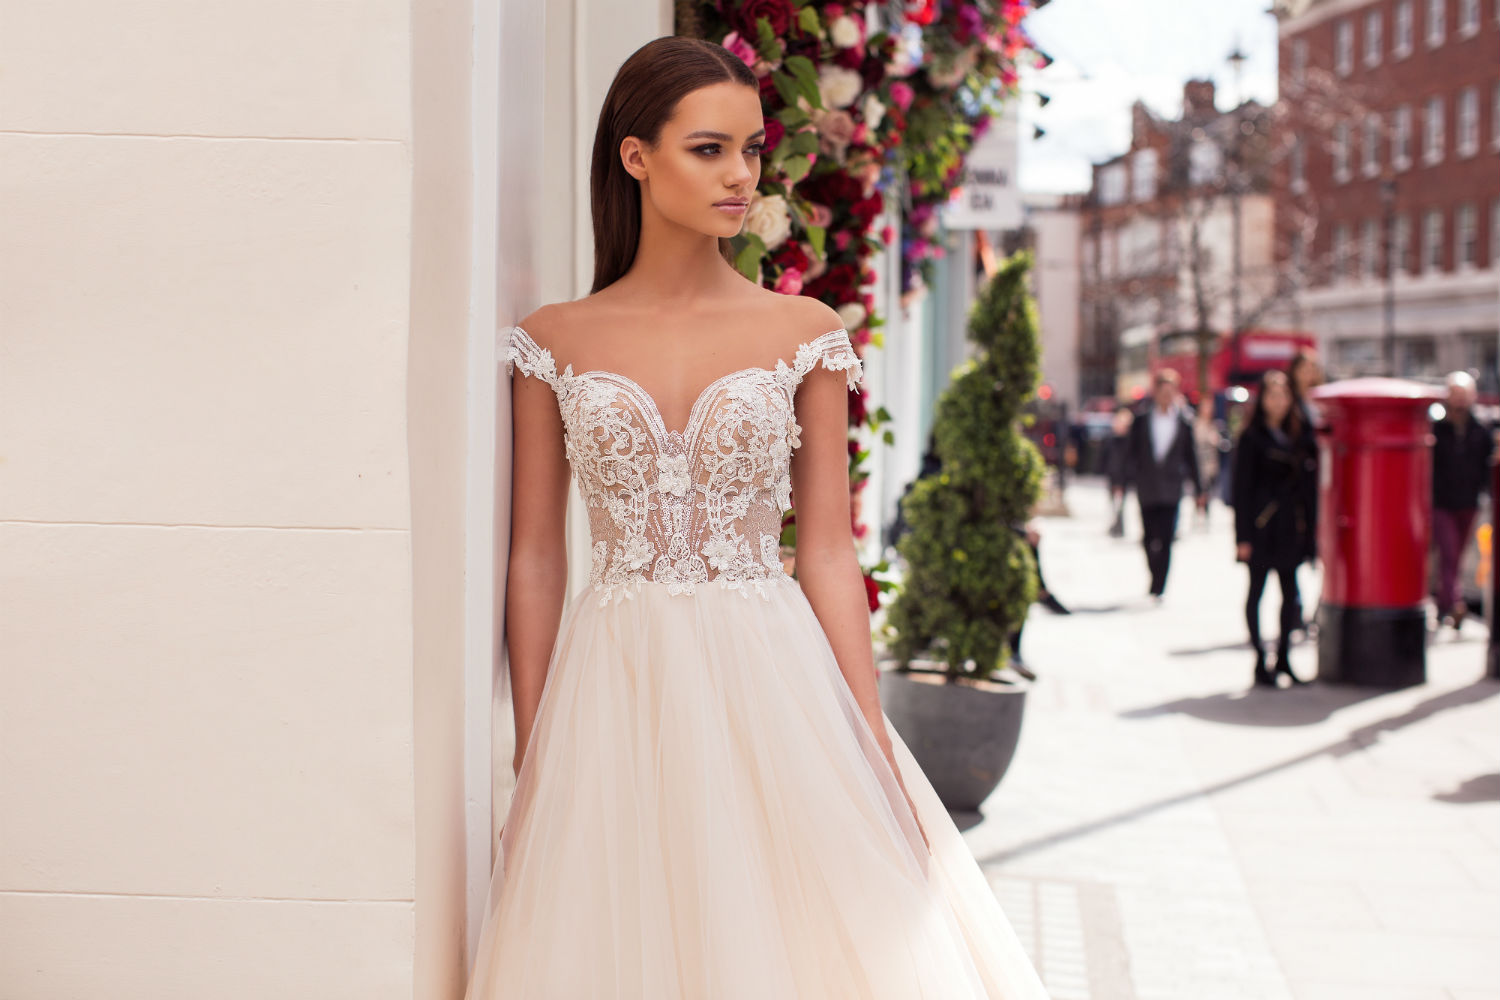 Blushing Bridal Boutique ,MillaNova, Elana, Blooming London, New Collection 2019 ,-wedding gown-Mississauga-woodbridge-vaughan-toronto-gta-ontario-canada-montreal-buffalo-NYC-california